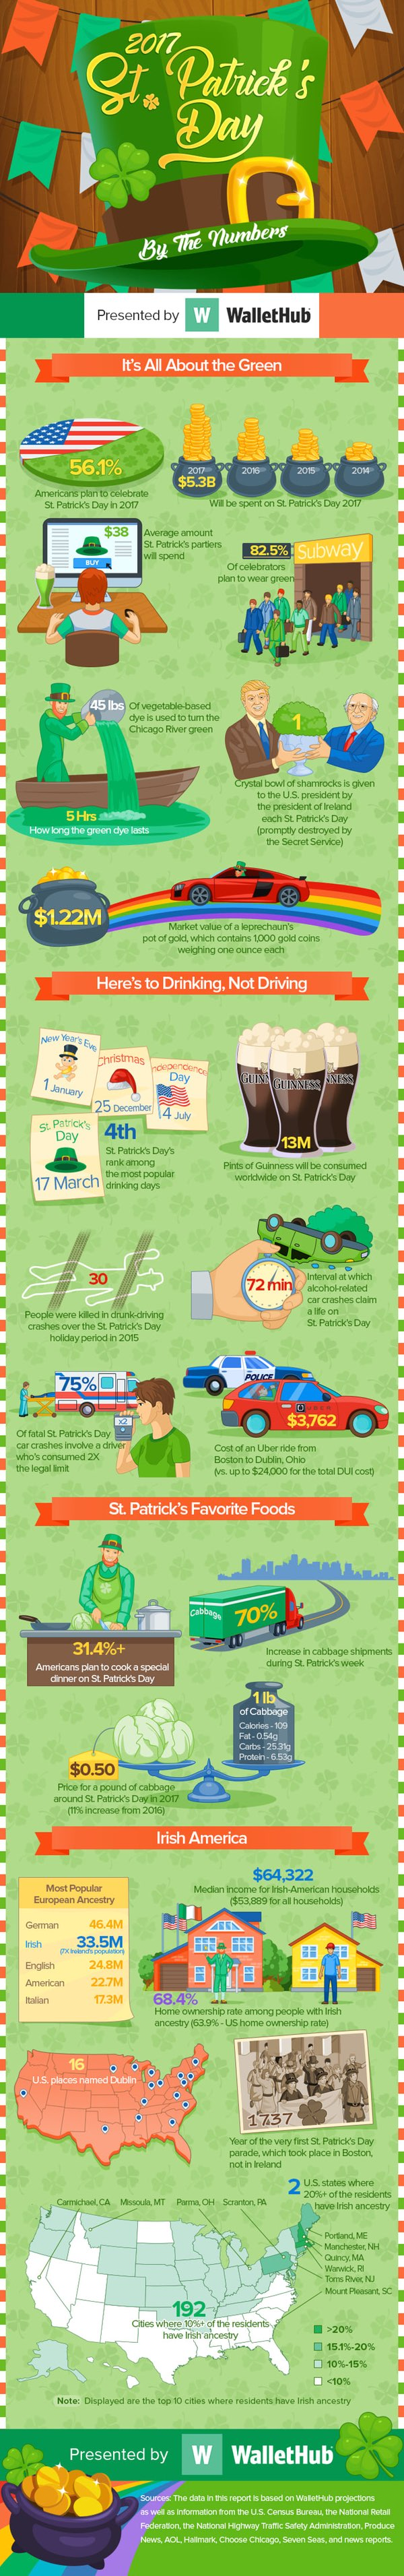 st patricks day by the numbers v4